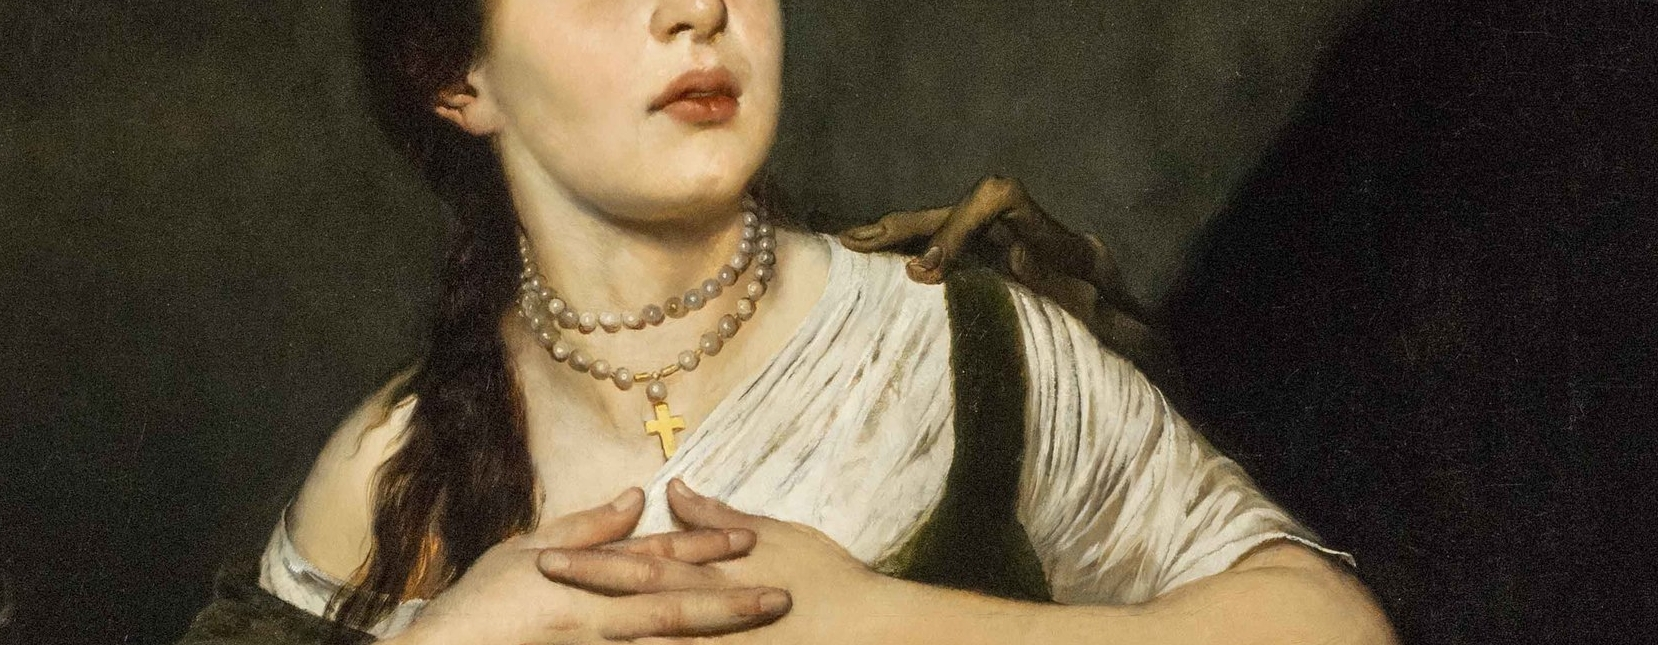 August Diefenbacher, Death and the Maiden, detail image